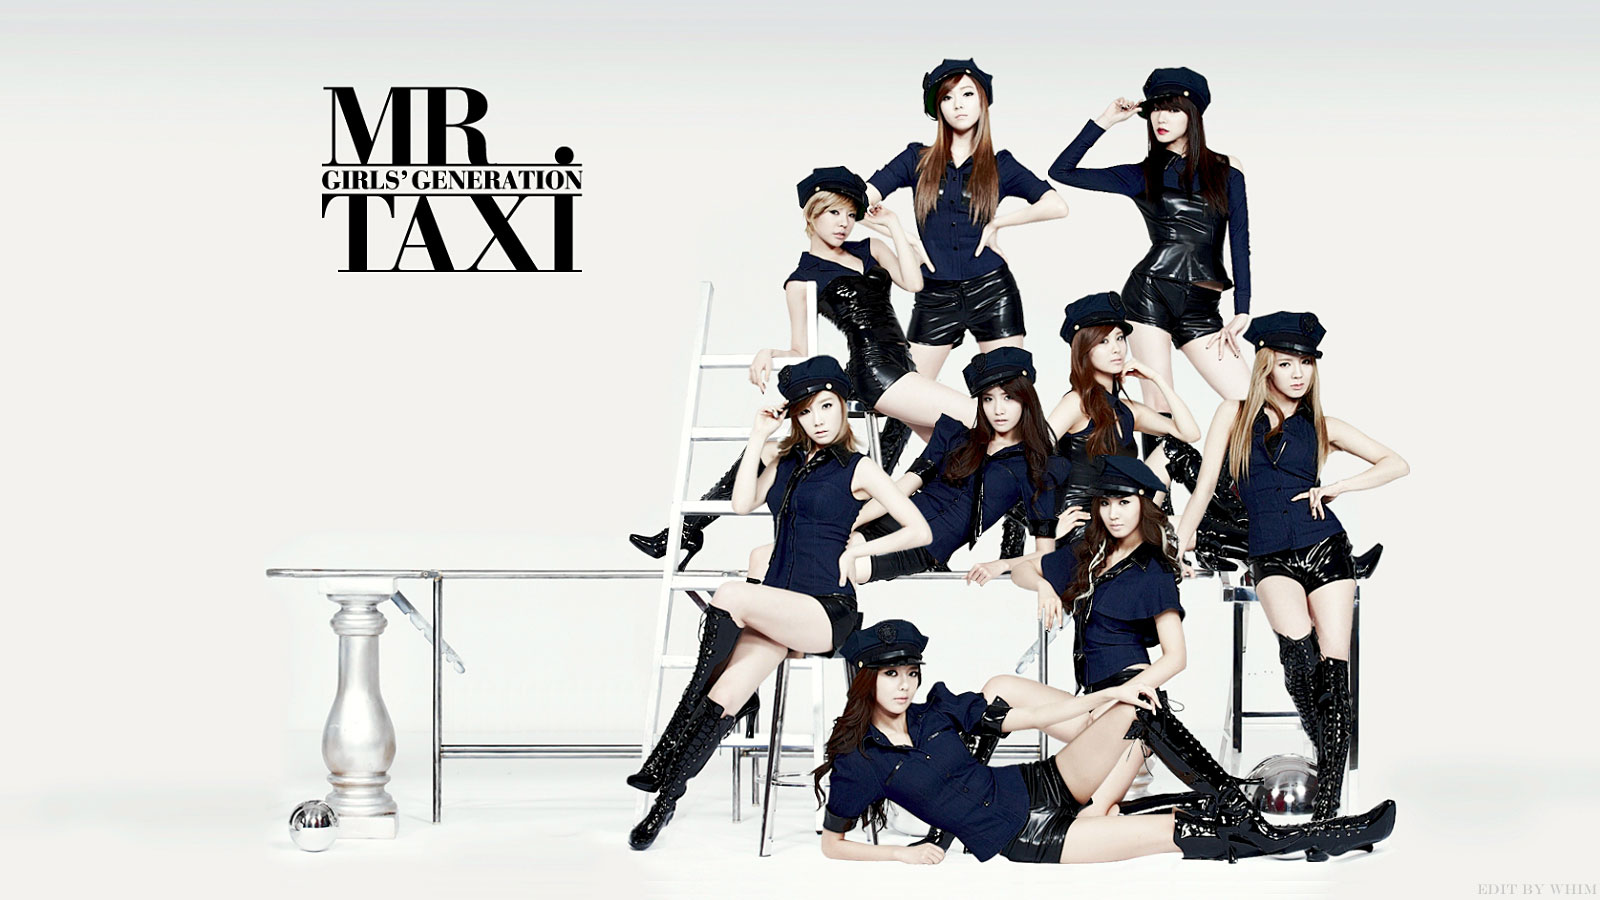 Girls Generation Mr Taxi Korean wallpaper